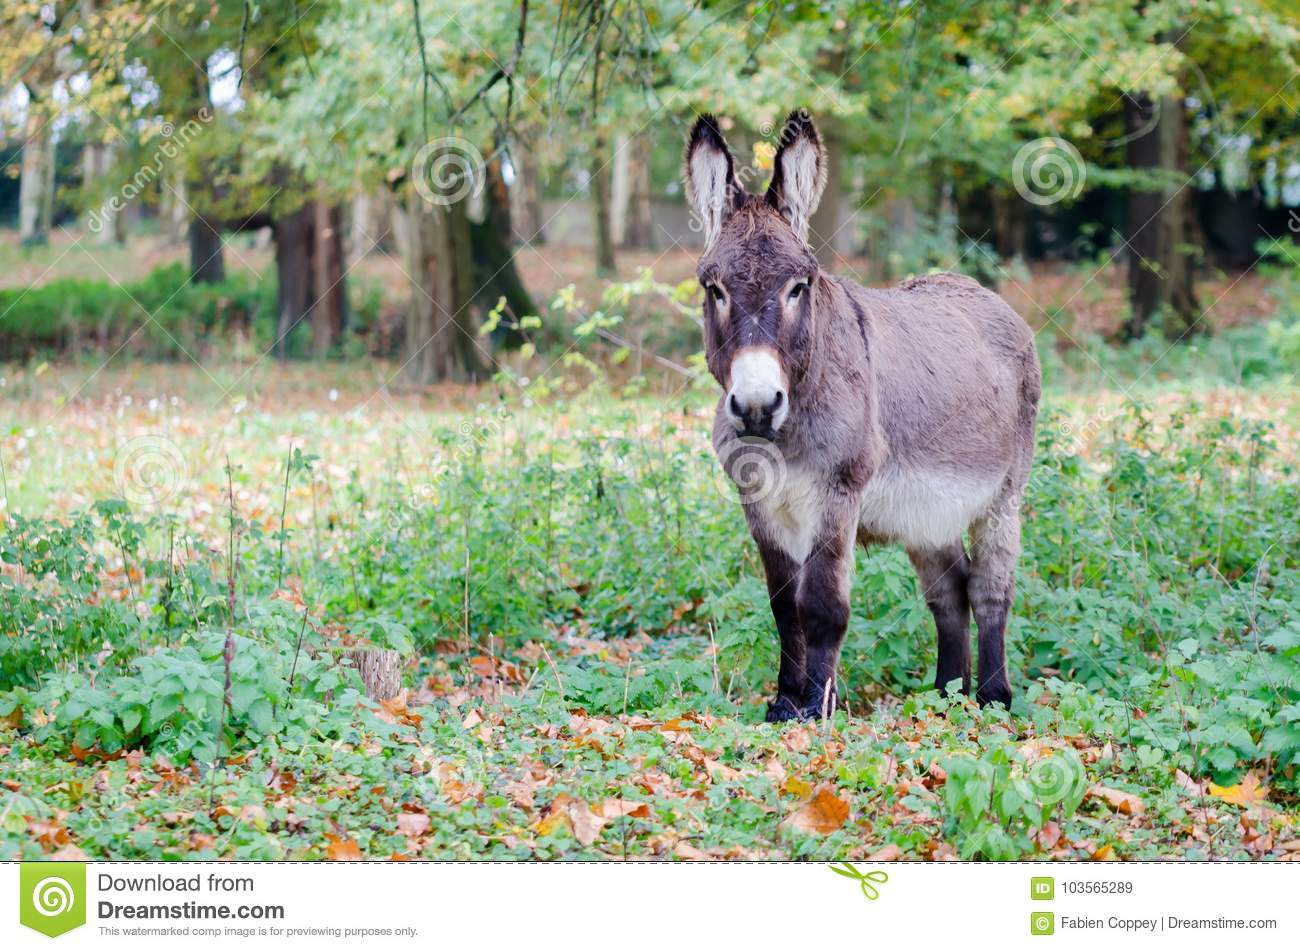 A donkey in a clearing